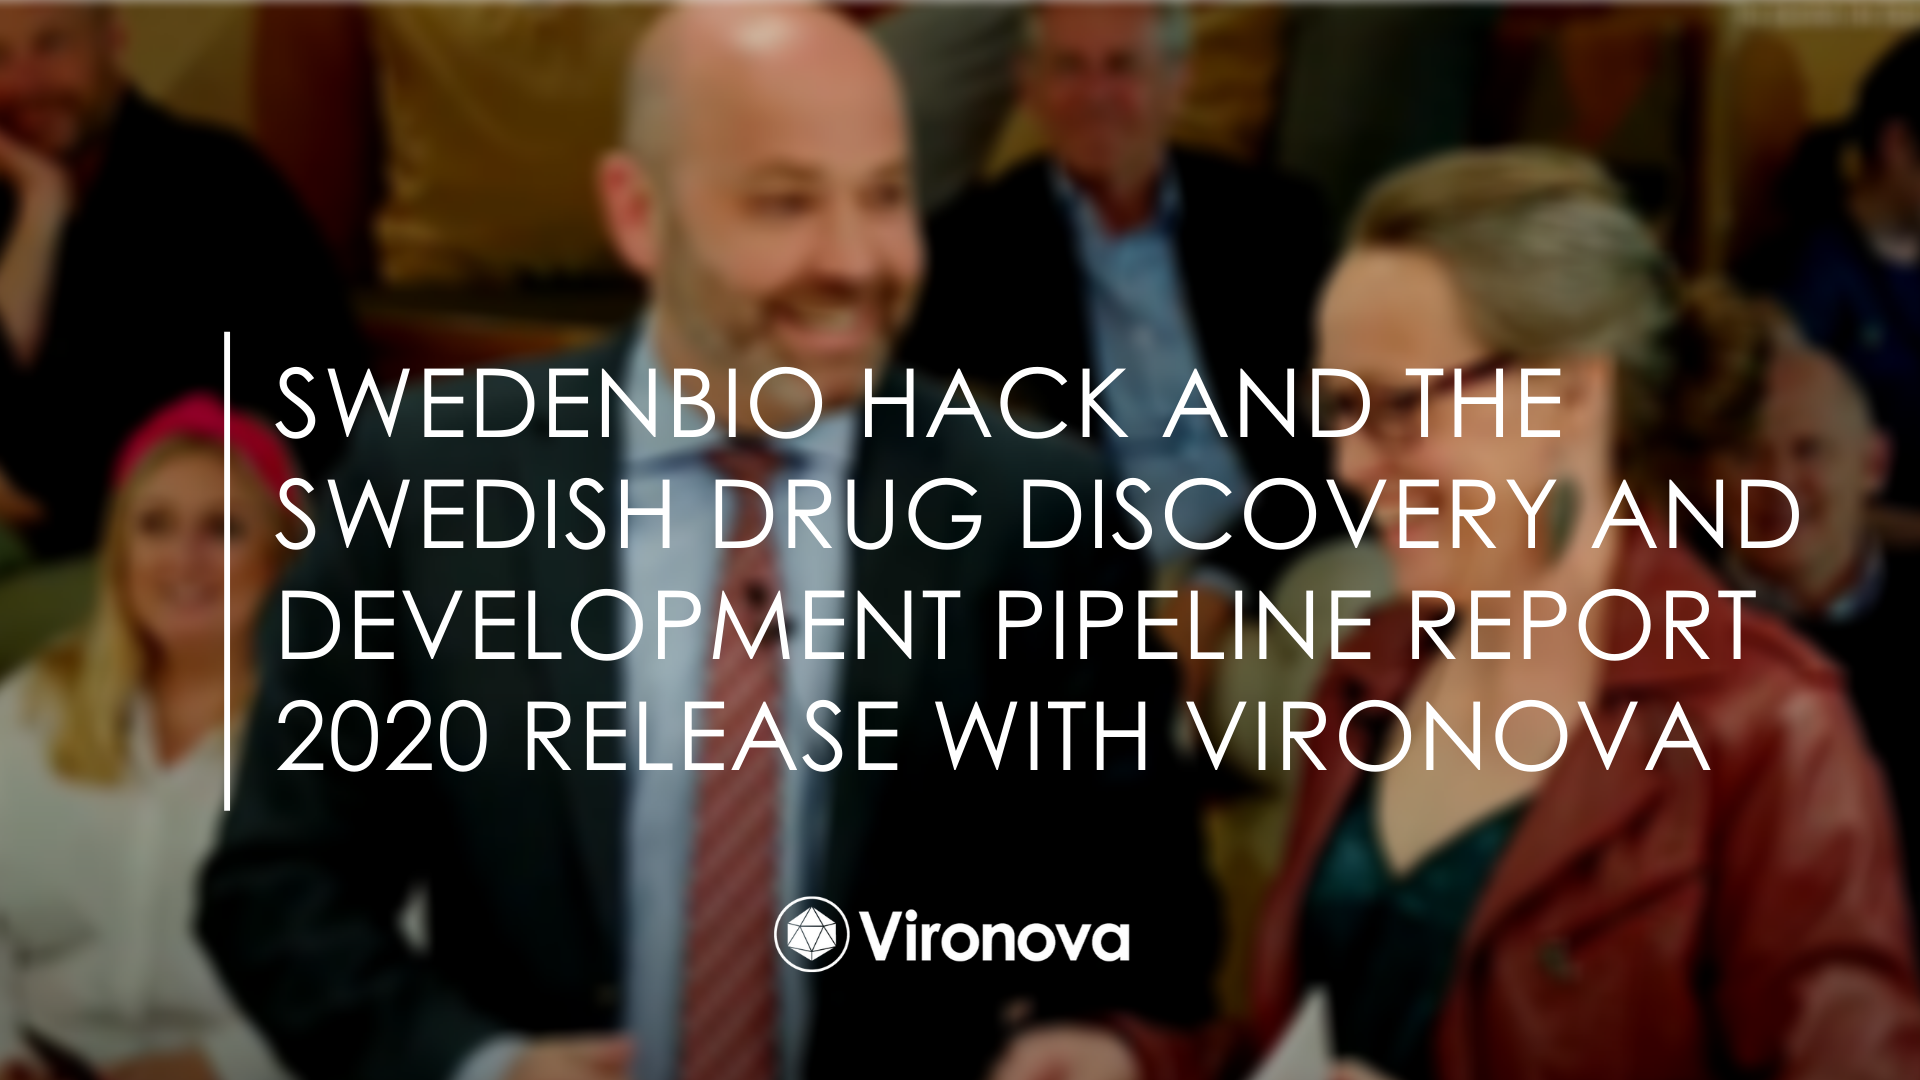 Vironova at SwedebBIO Hack andThe Swedish Drug Discovery and Development Pipeline Report 2020 Release